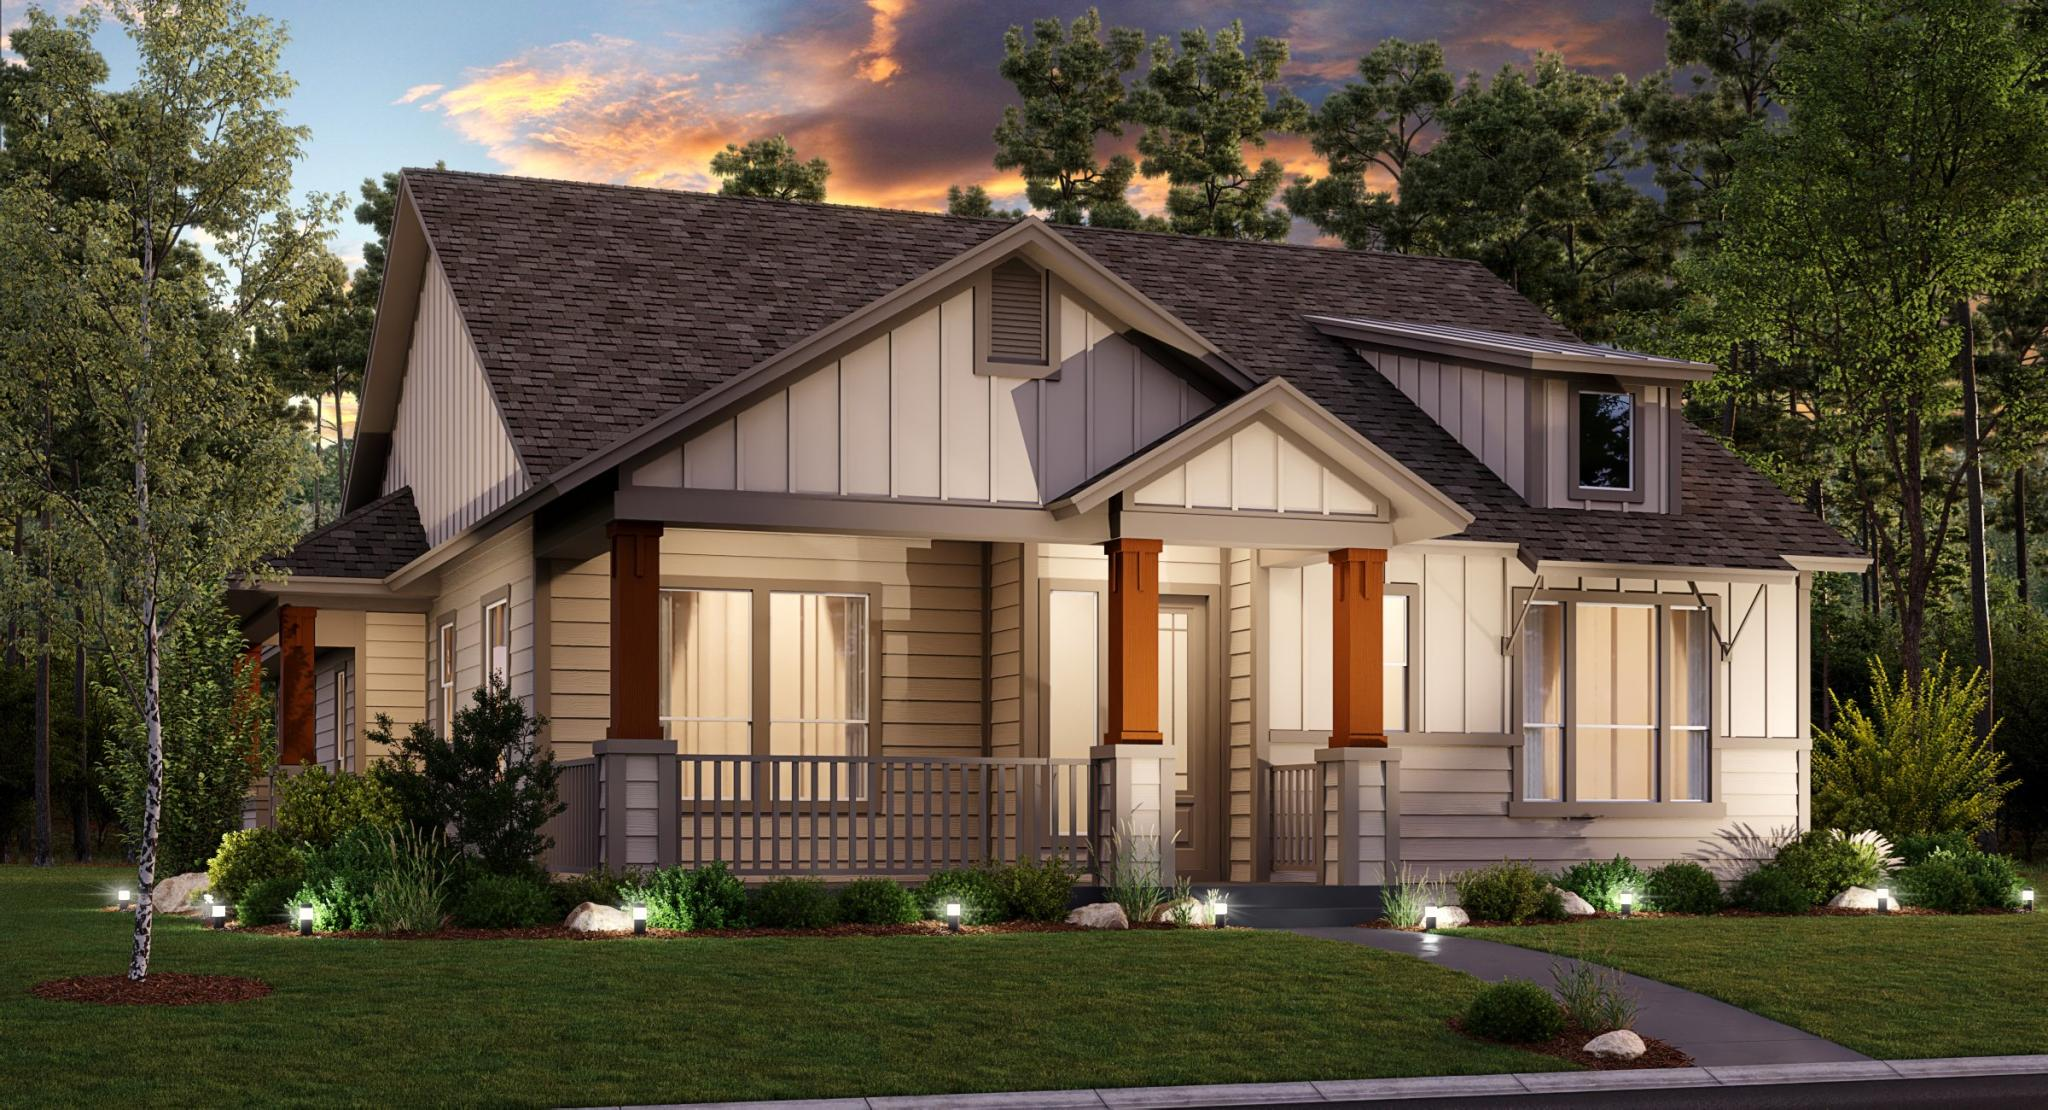 Mueller 45s Yardhouse by CalAtlantic Homes New Homes for Sale - Austin, TX  - 4 Photos | Trulia